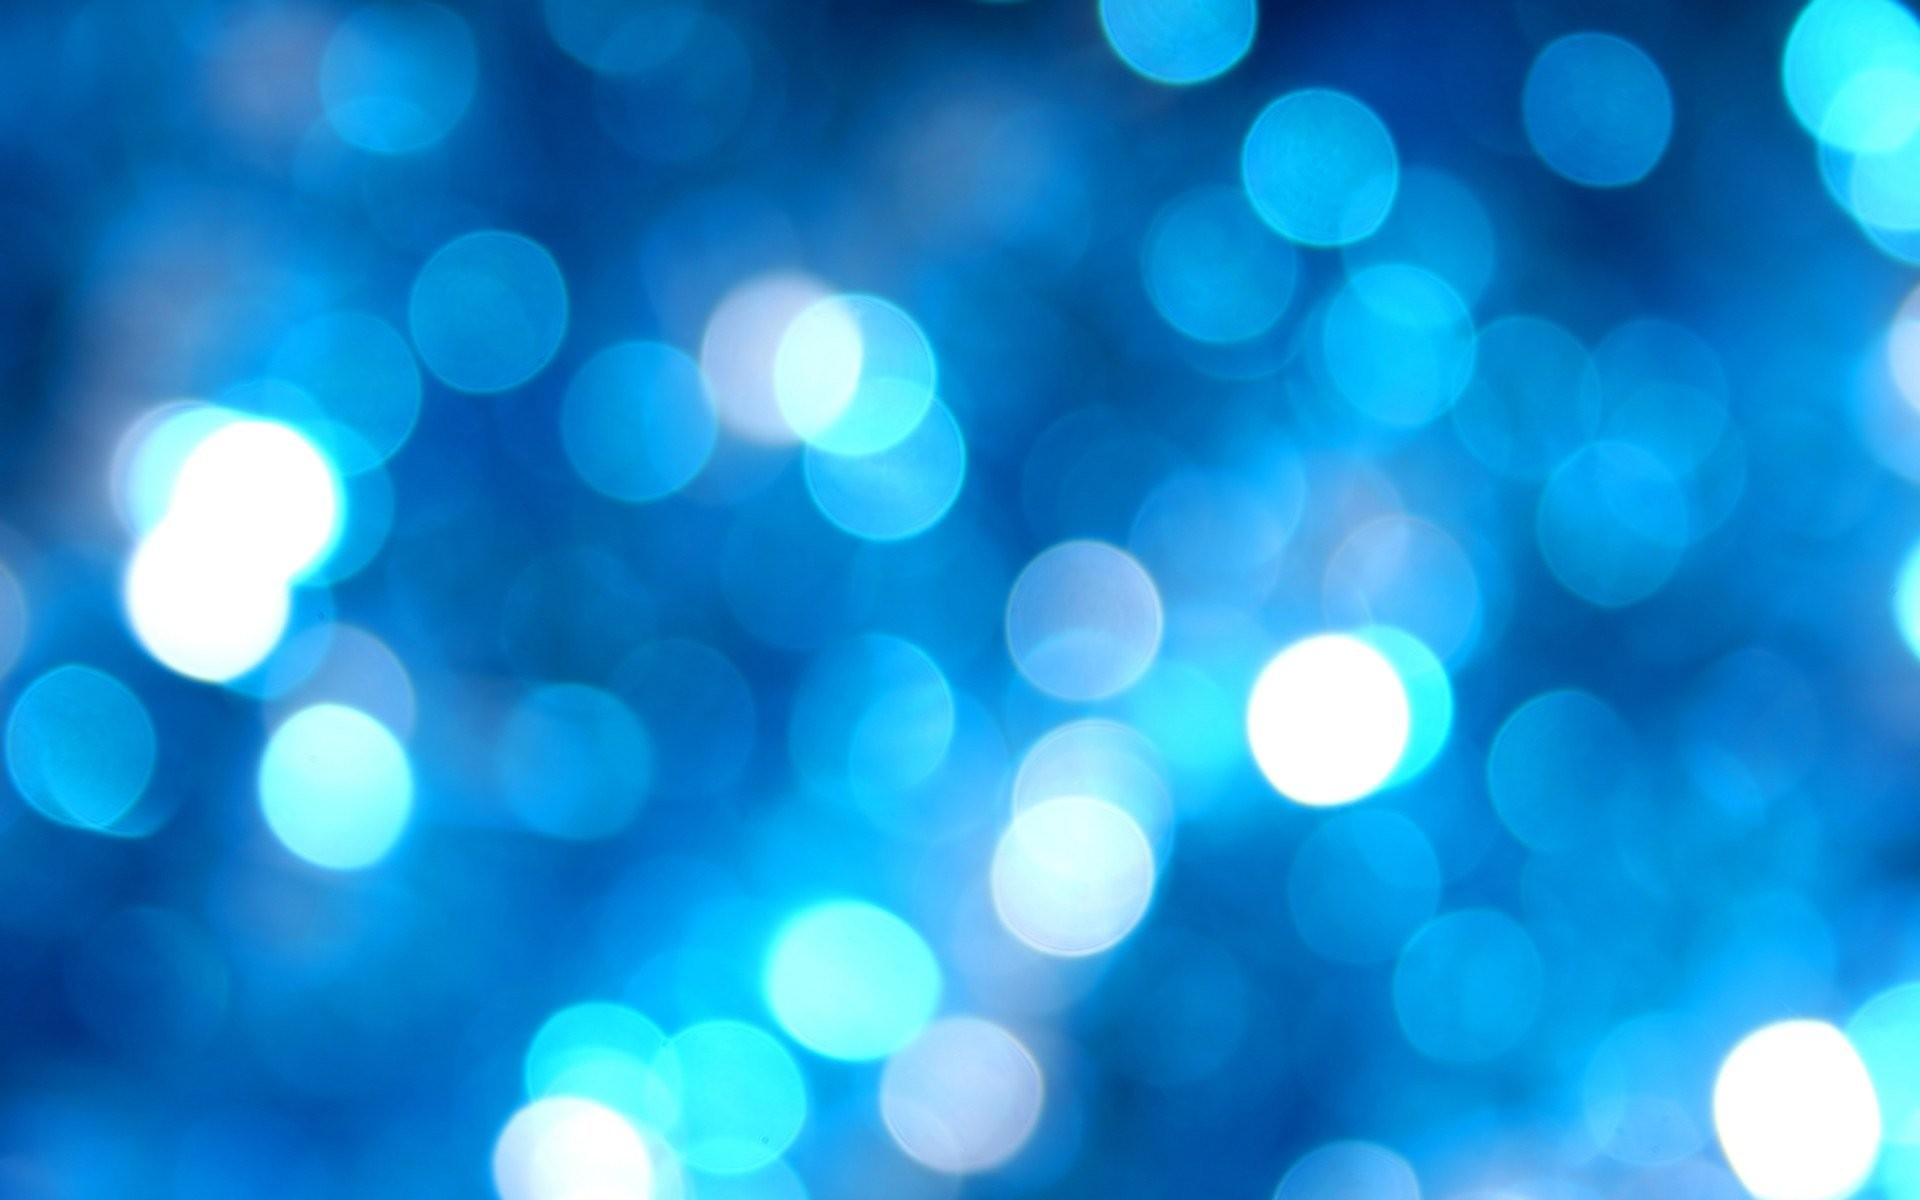 backgrounds-twitter-cool-blue-images-background.jpg (1920×